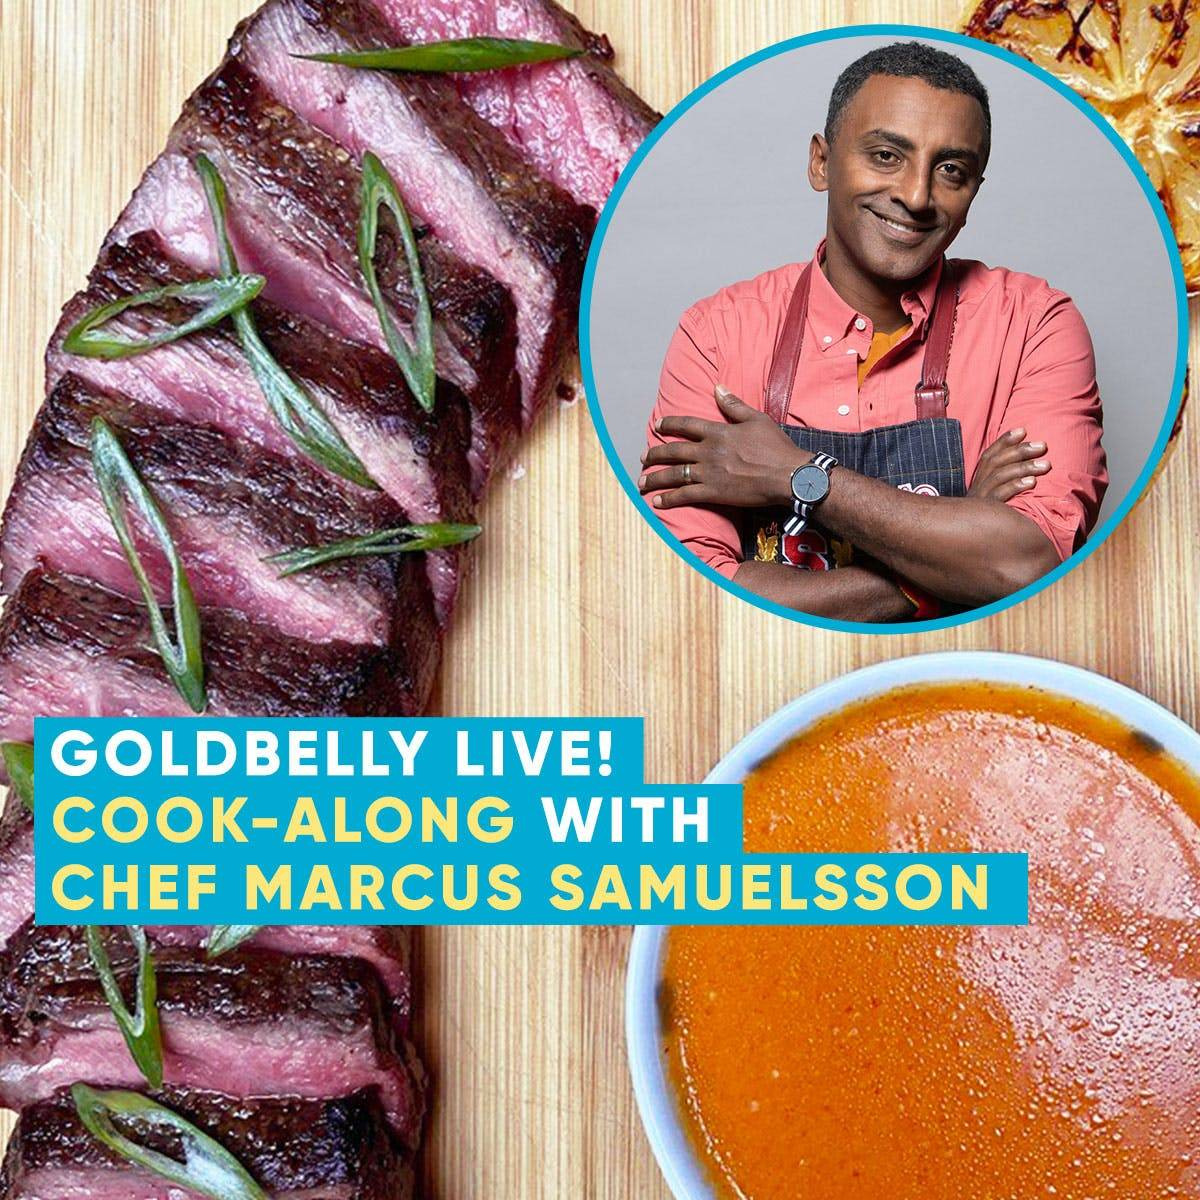 Marcus Samuelsson's Streetbird - Chef Marcus Samuelsson's THE RISE Meal Kit + Live Cooking Class